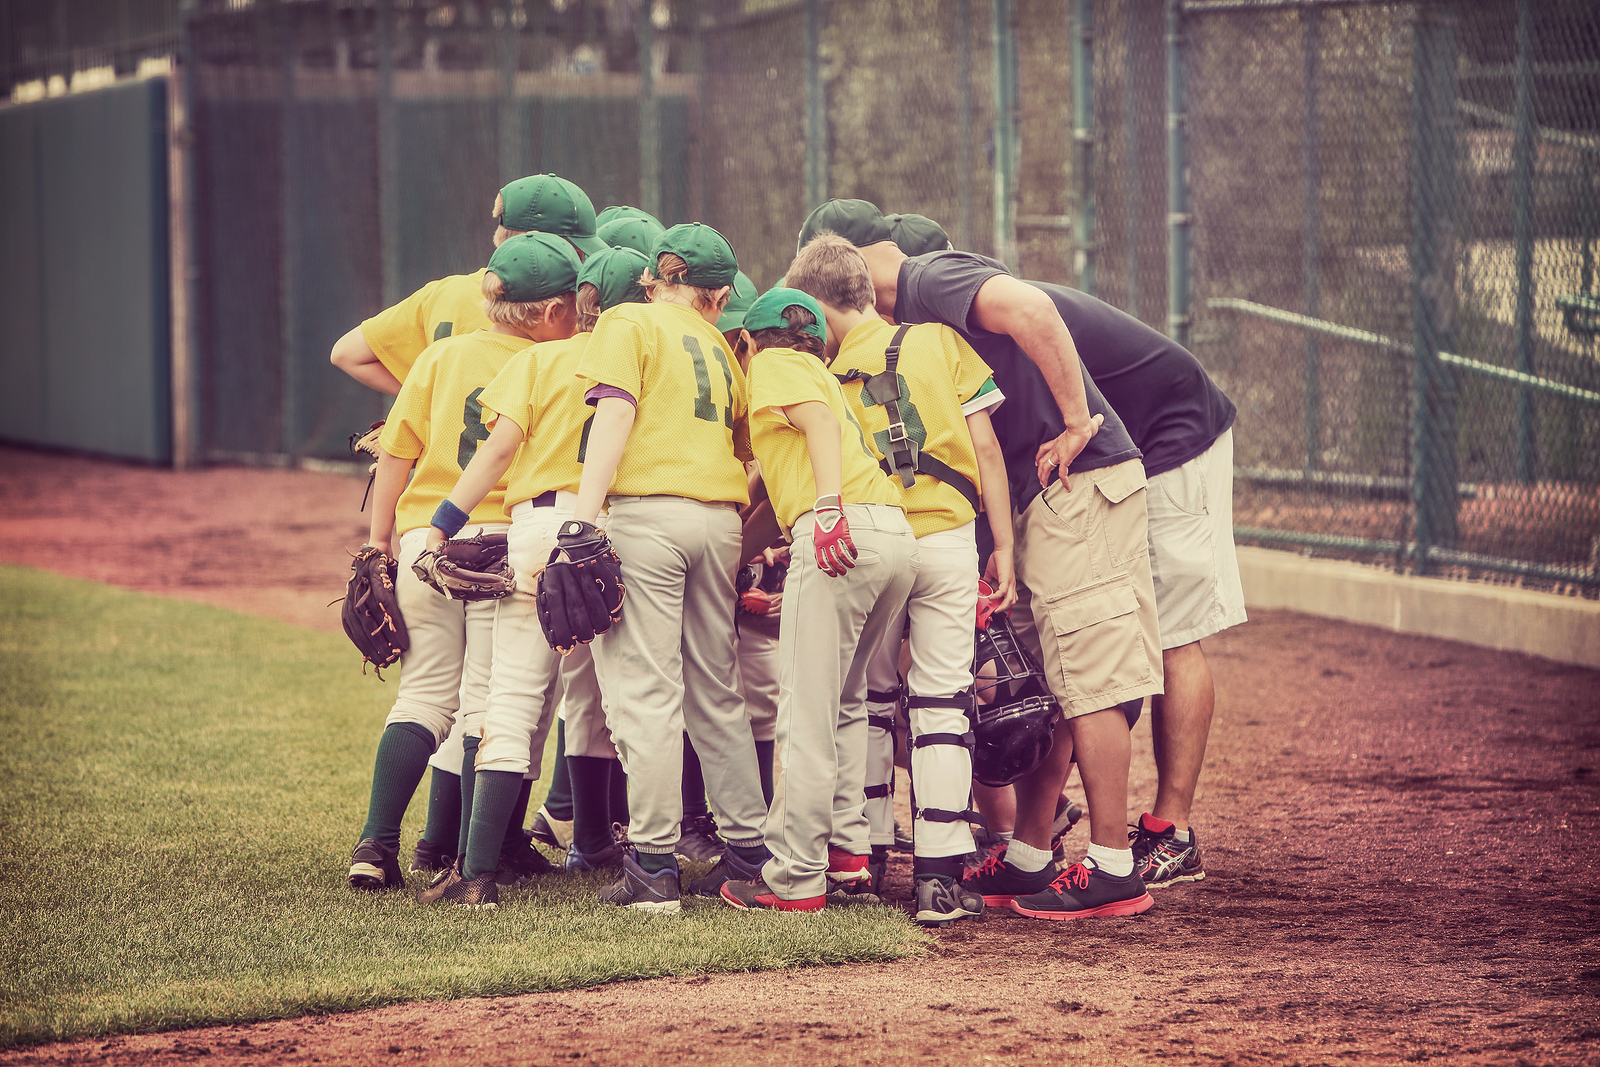 baseball awards for youth  Analyzing the Effects of Participation Awards in Youth Sports ...